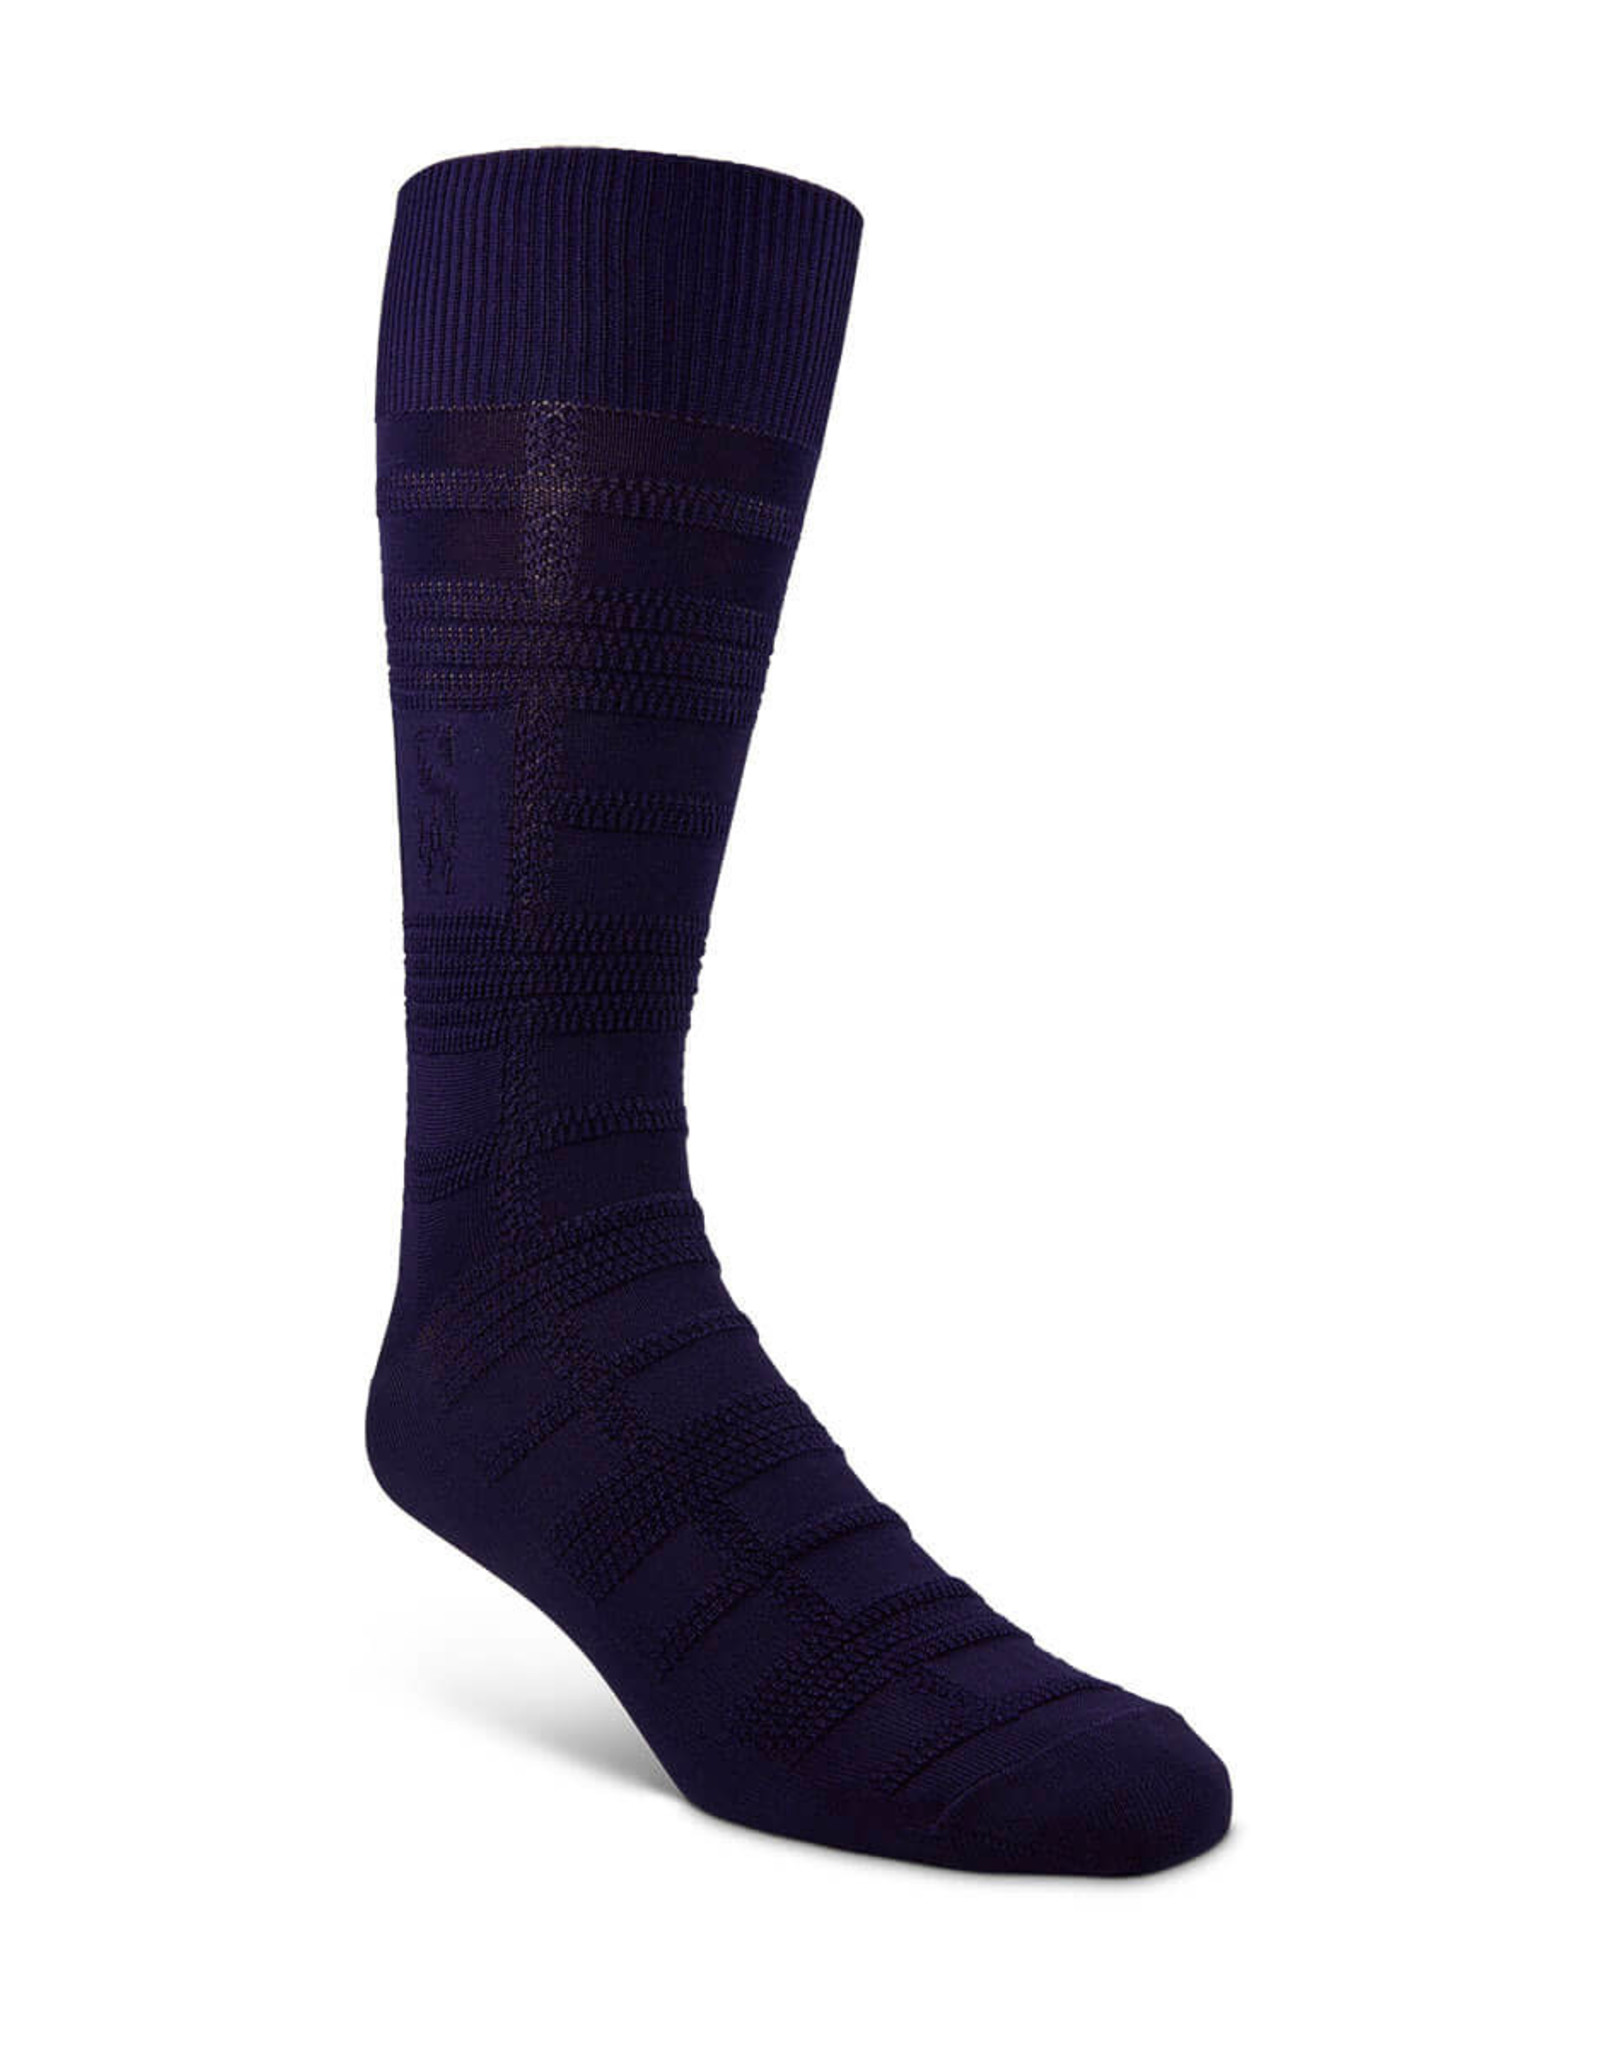 Stacy Adams Socks Stacy Adams Gemstone For Size 8-12.5 Plum/Purple